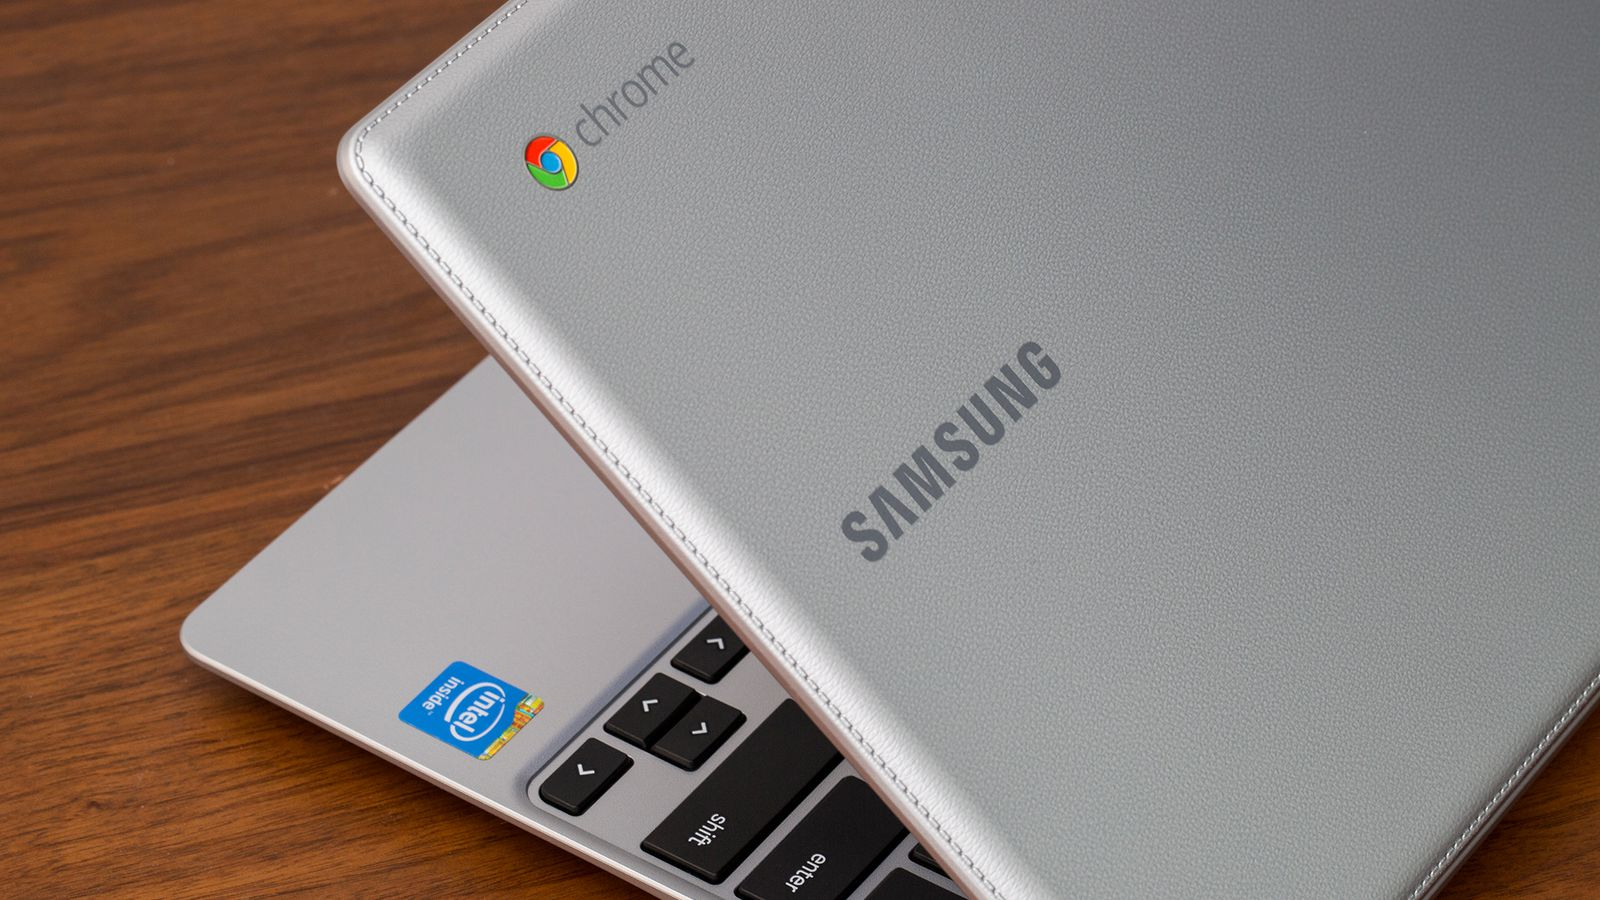 Chromebooks outsold Macs for the first time in the US - The